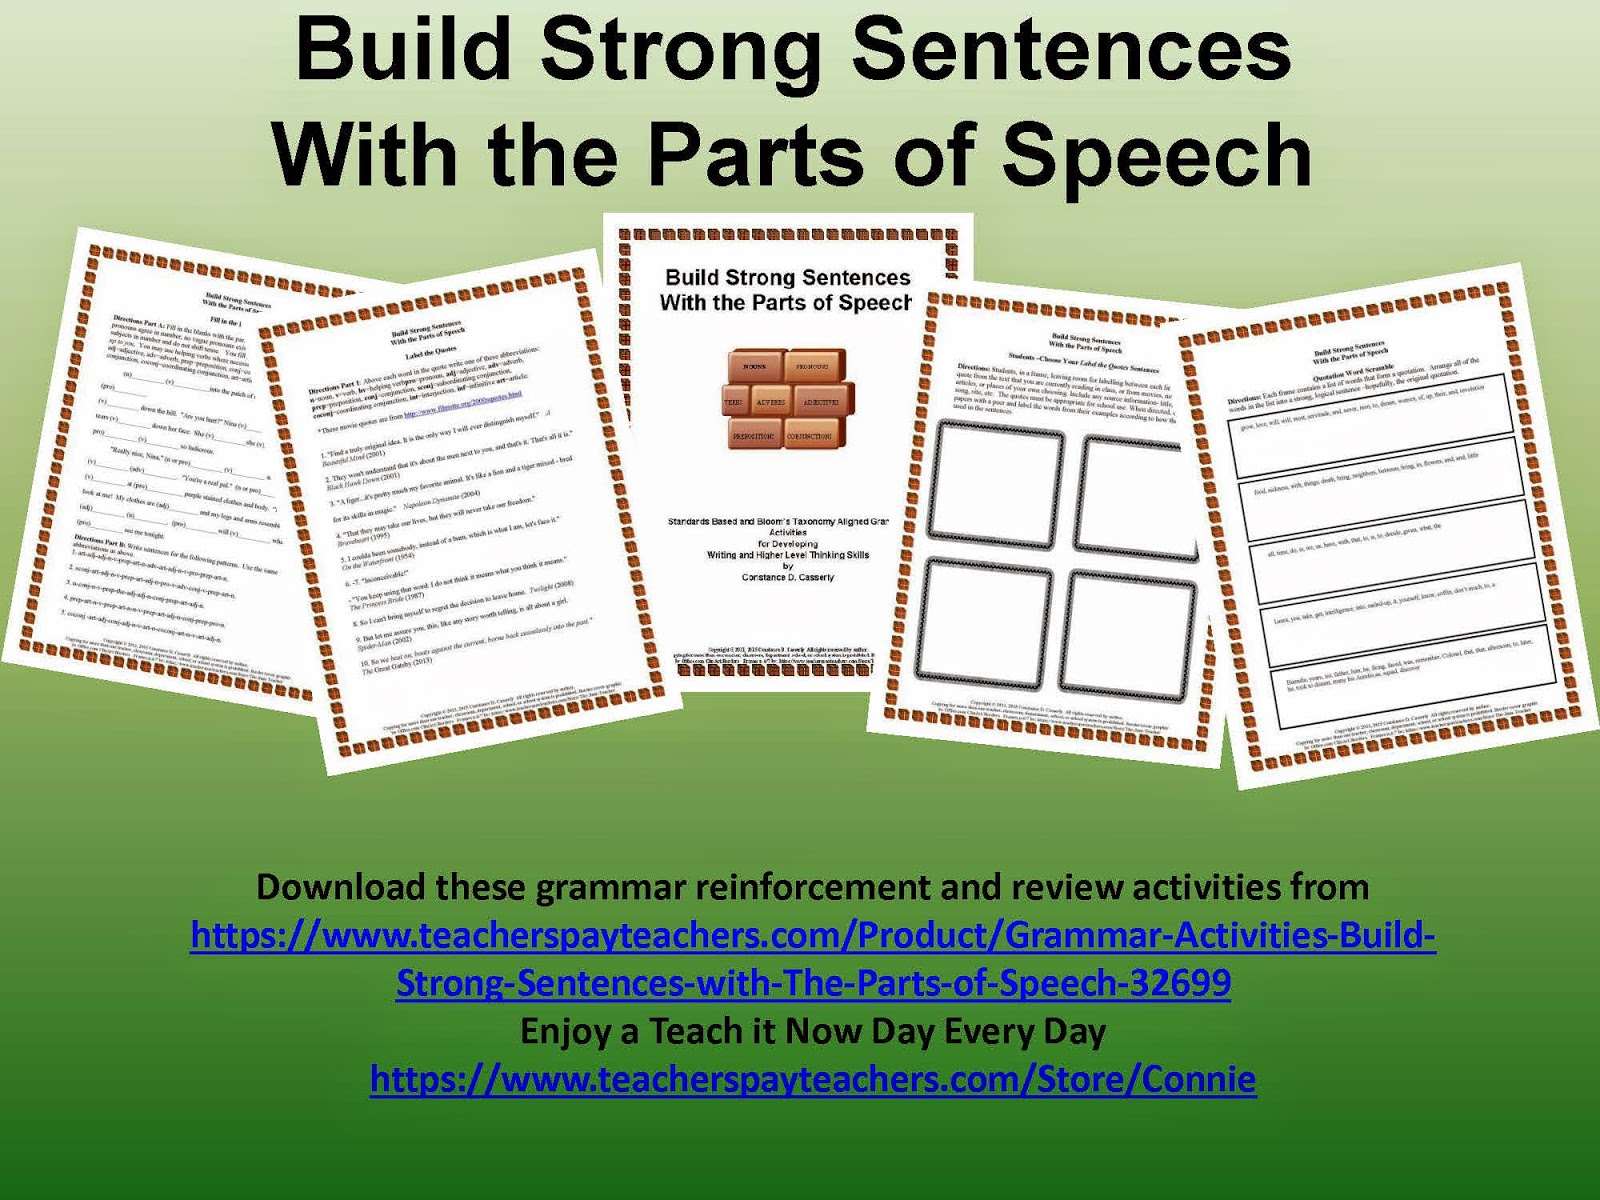 Build Strong Sentences with The Parts of Speech preview